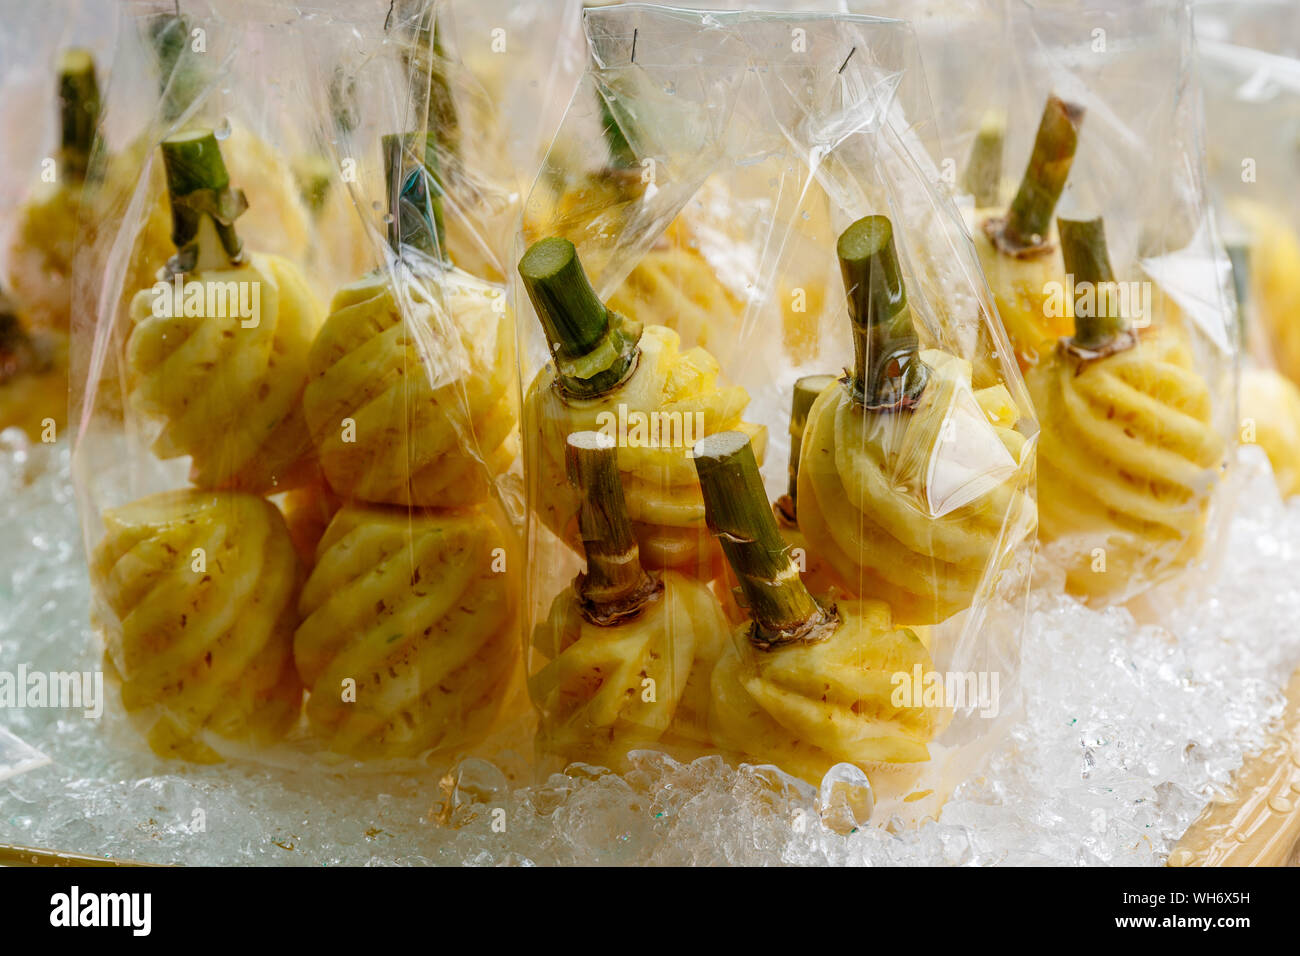 Peeled fresh pineapples with ice at a street stall. Bangkok, Thailand. Stock Photo